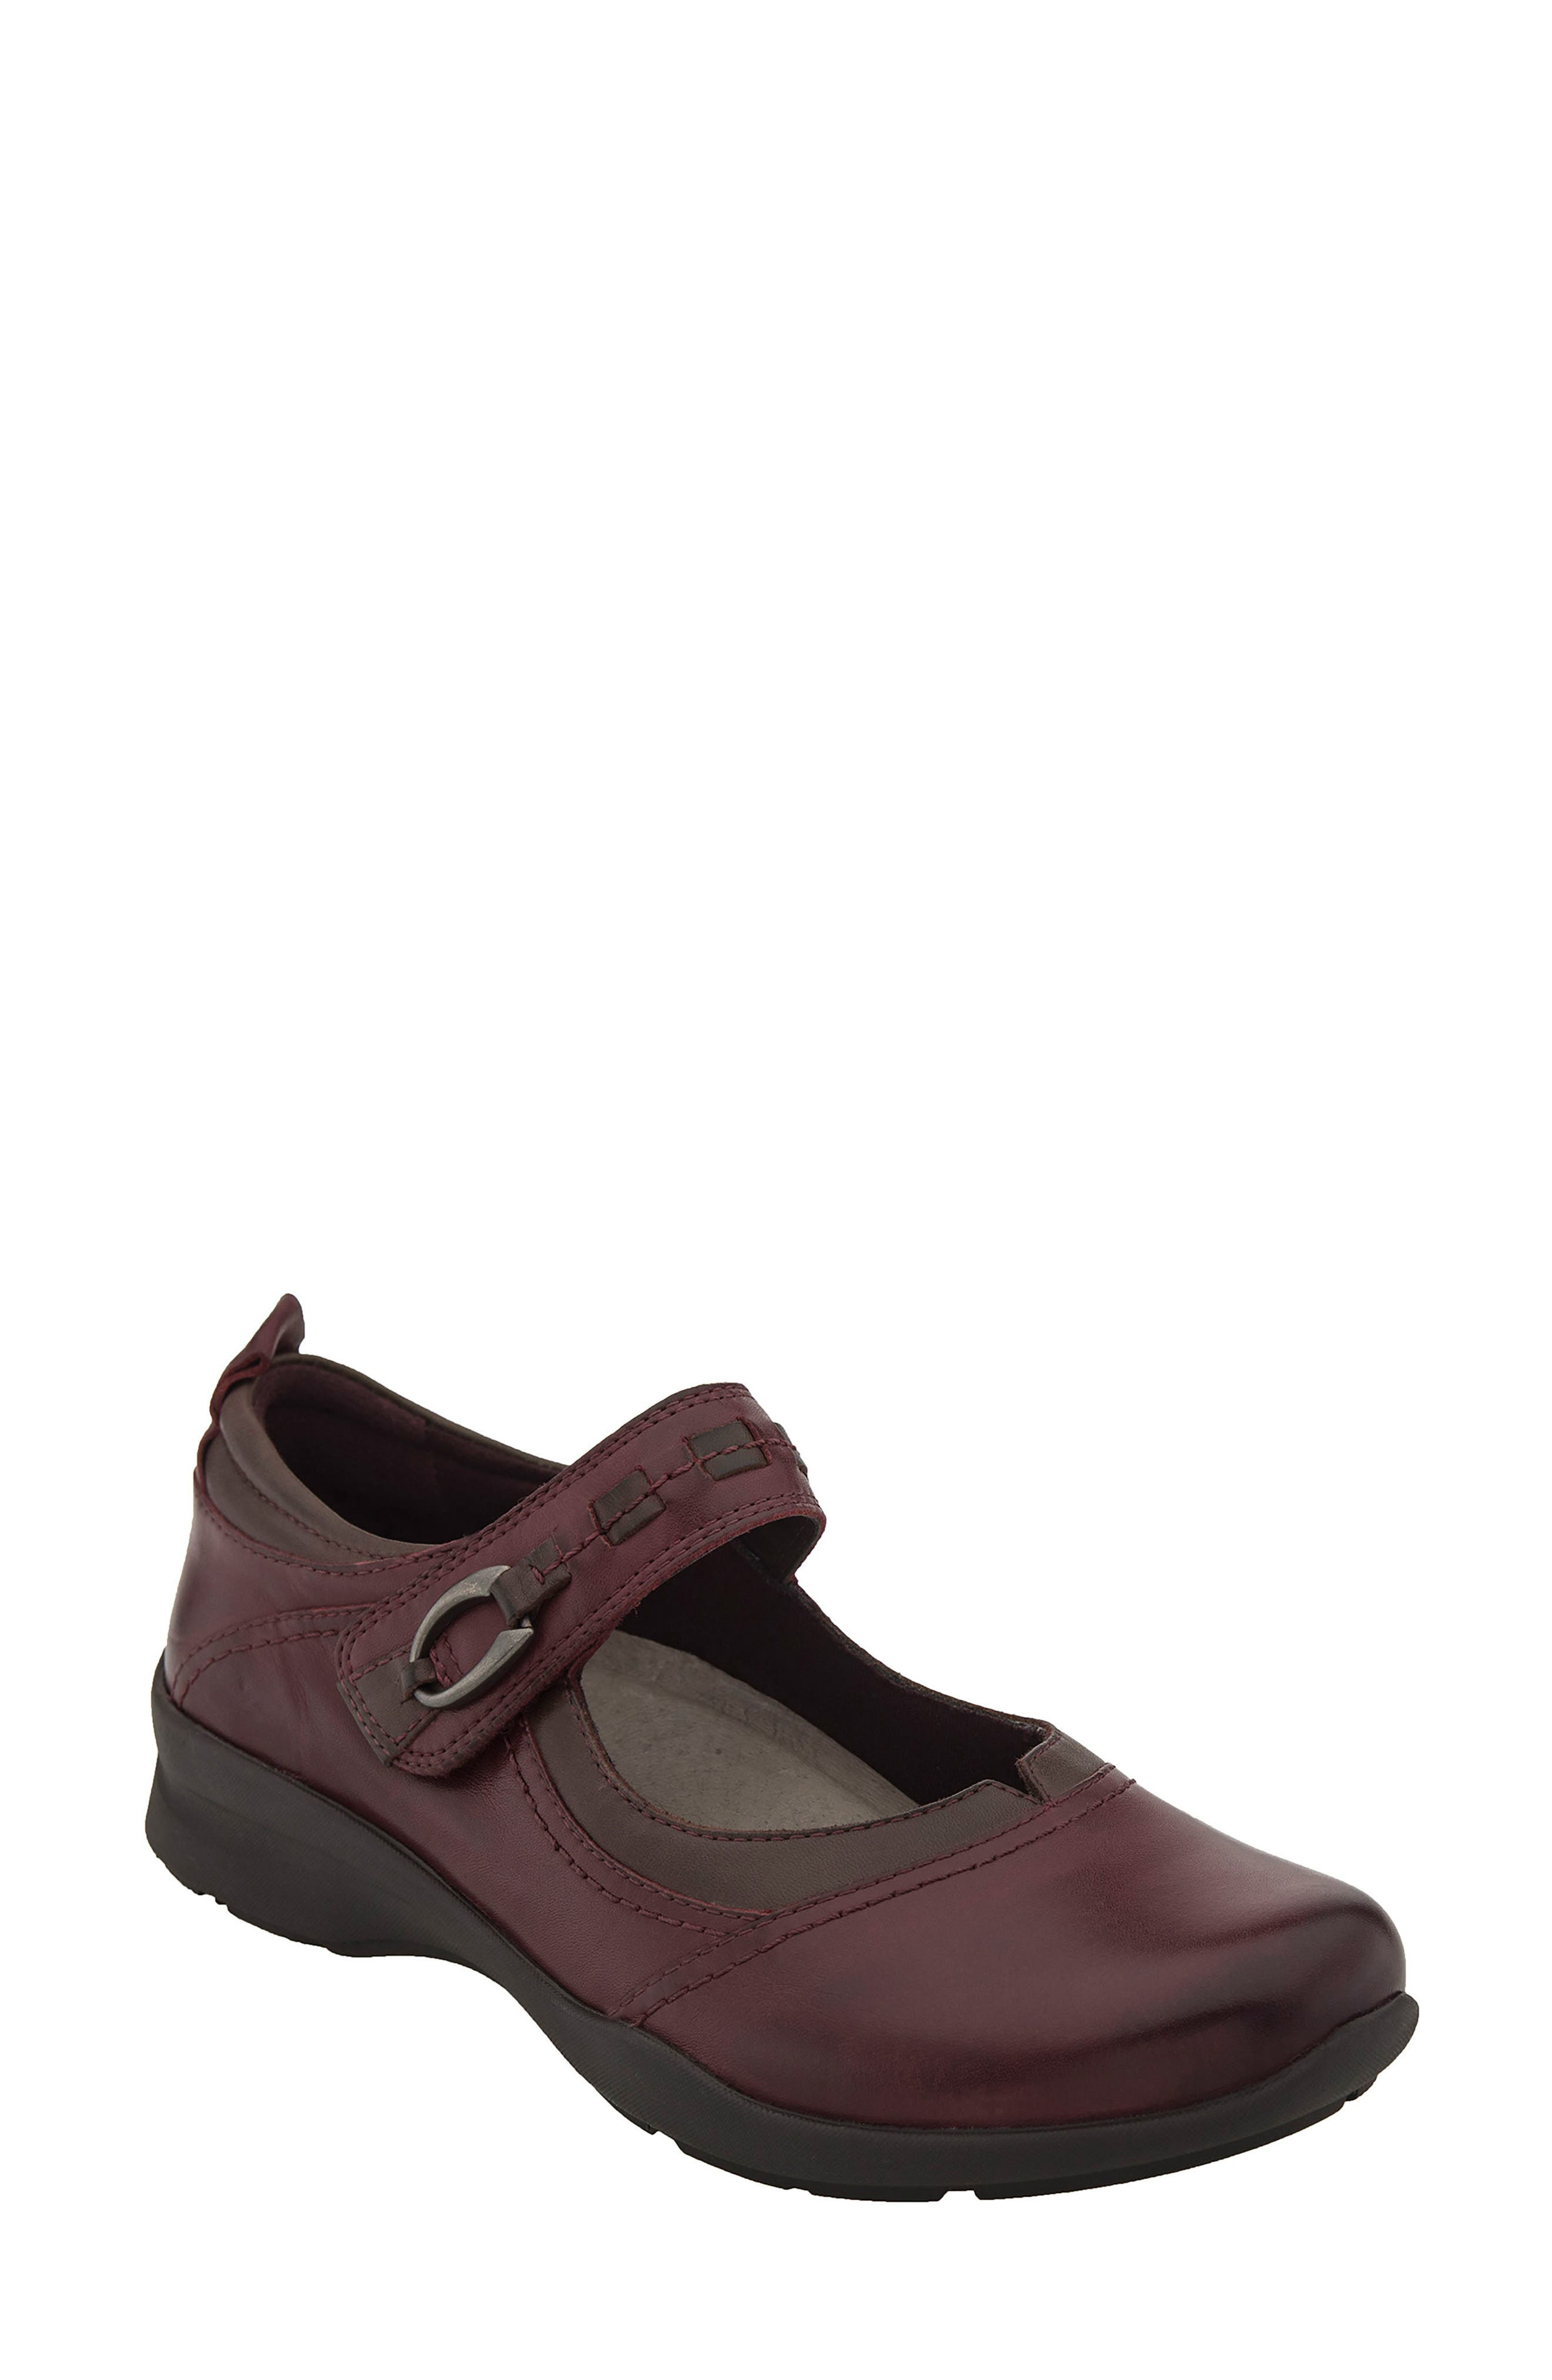 Alternate Image 1 Selected - Earth® 'Angelica' Mary Jane Flat (Women)